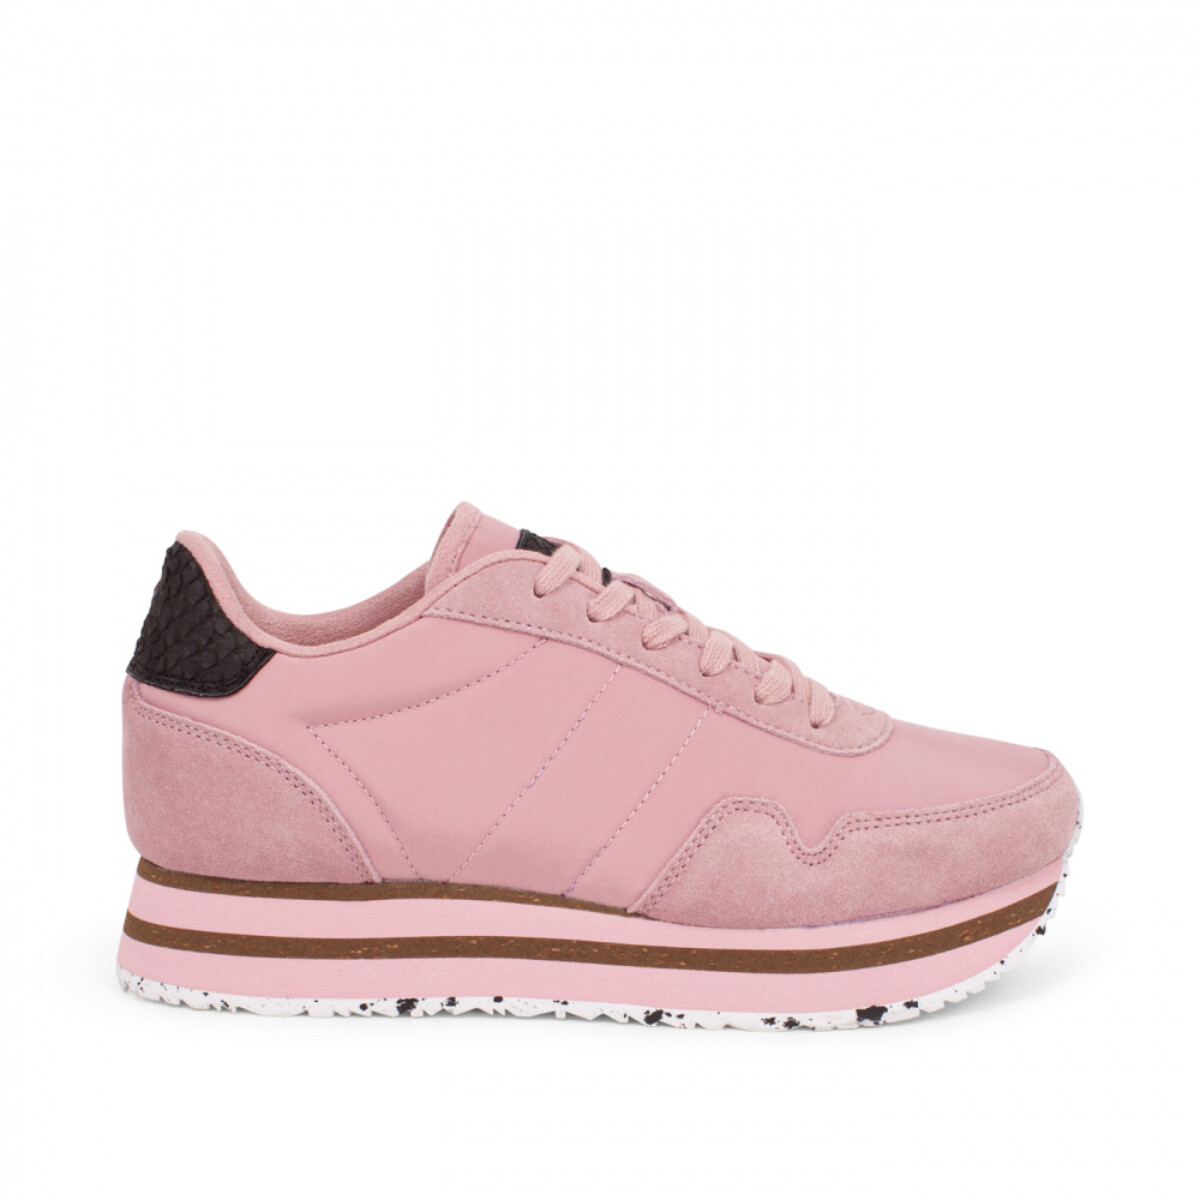 Soft pink plateau sneakers Nora III WL1751